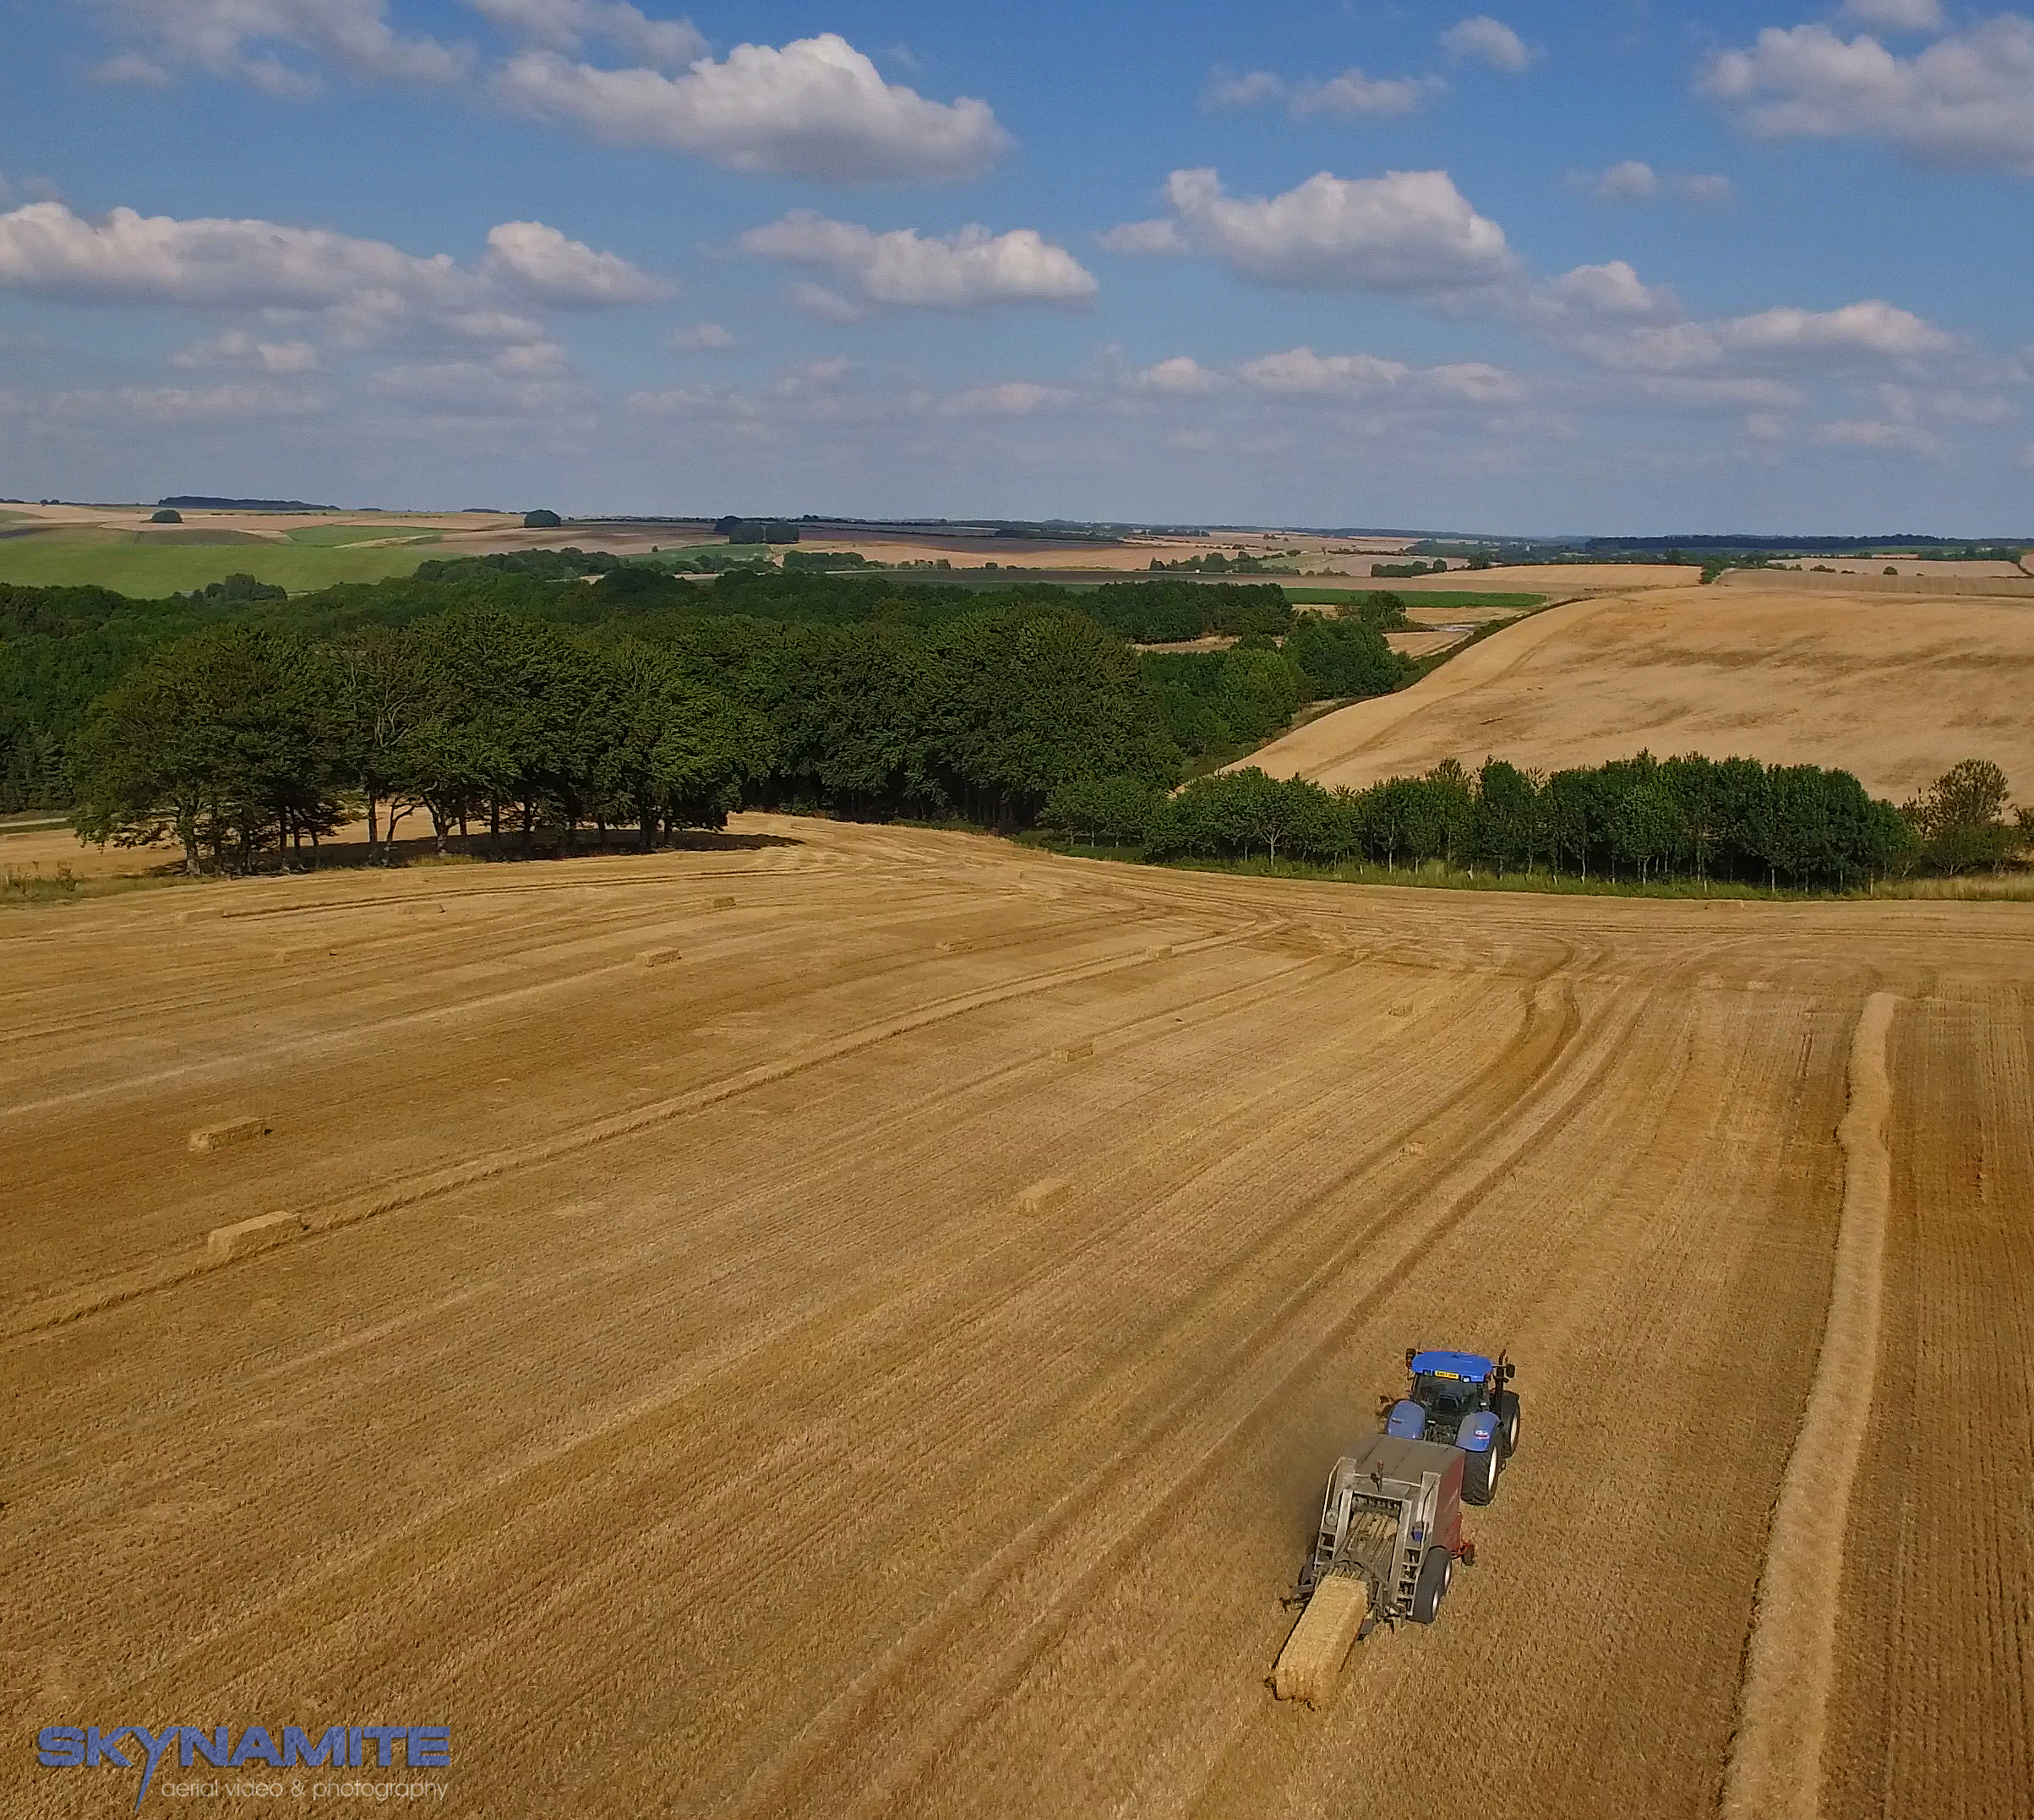 Aerial harvesting picture with tractor